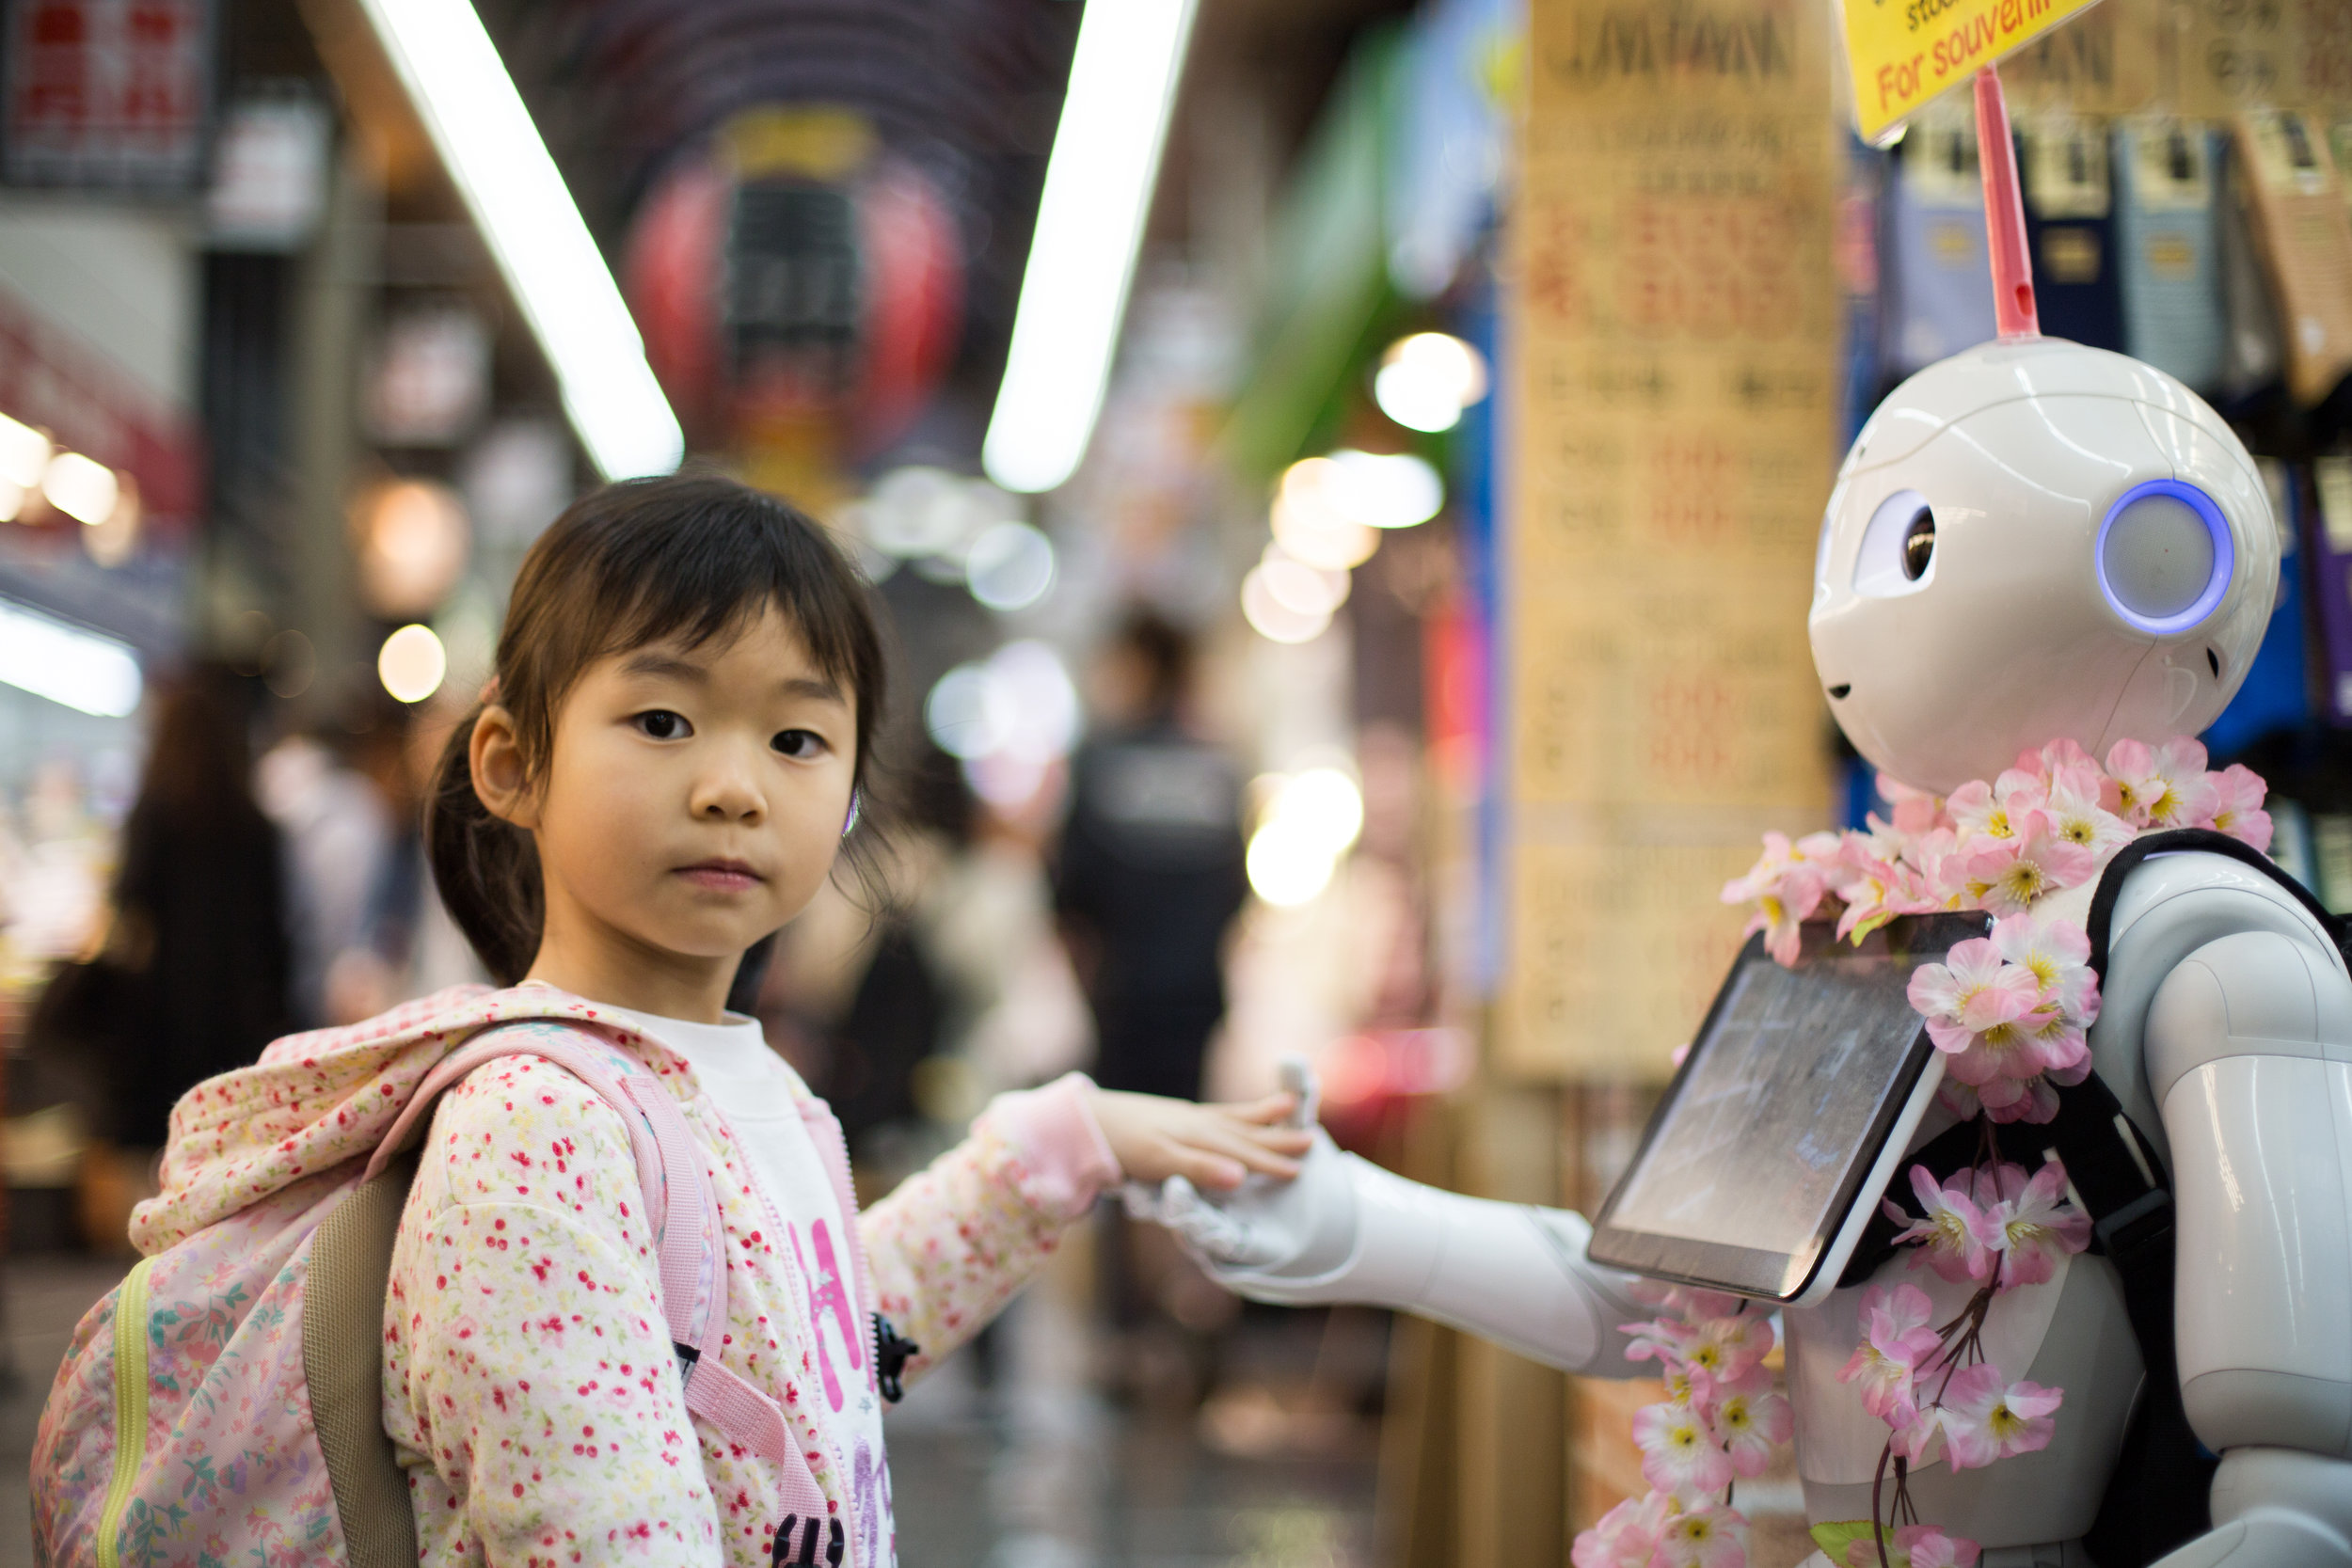 girl shaking hands with a robot